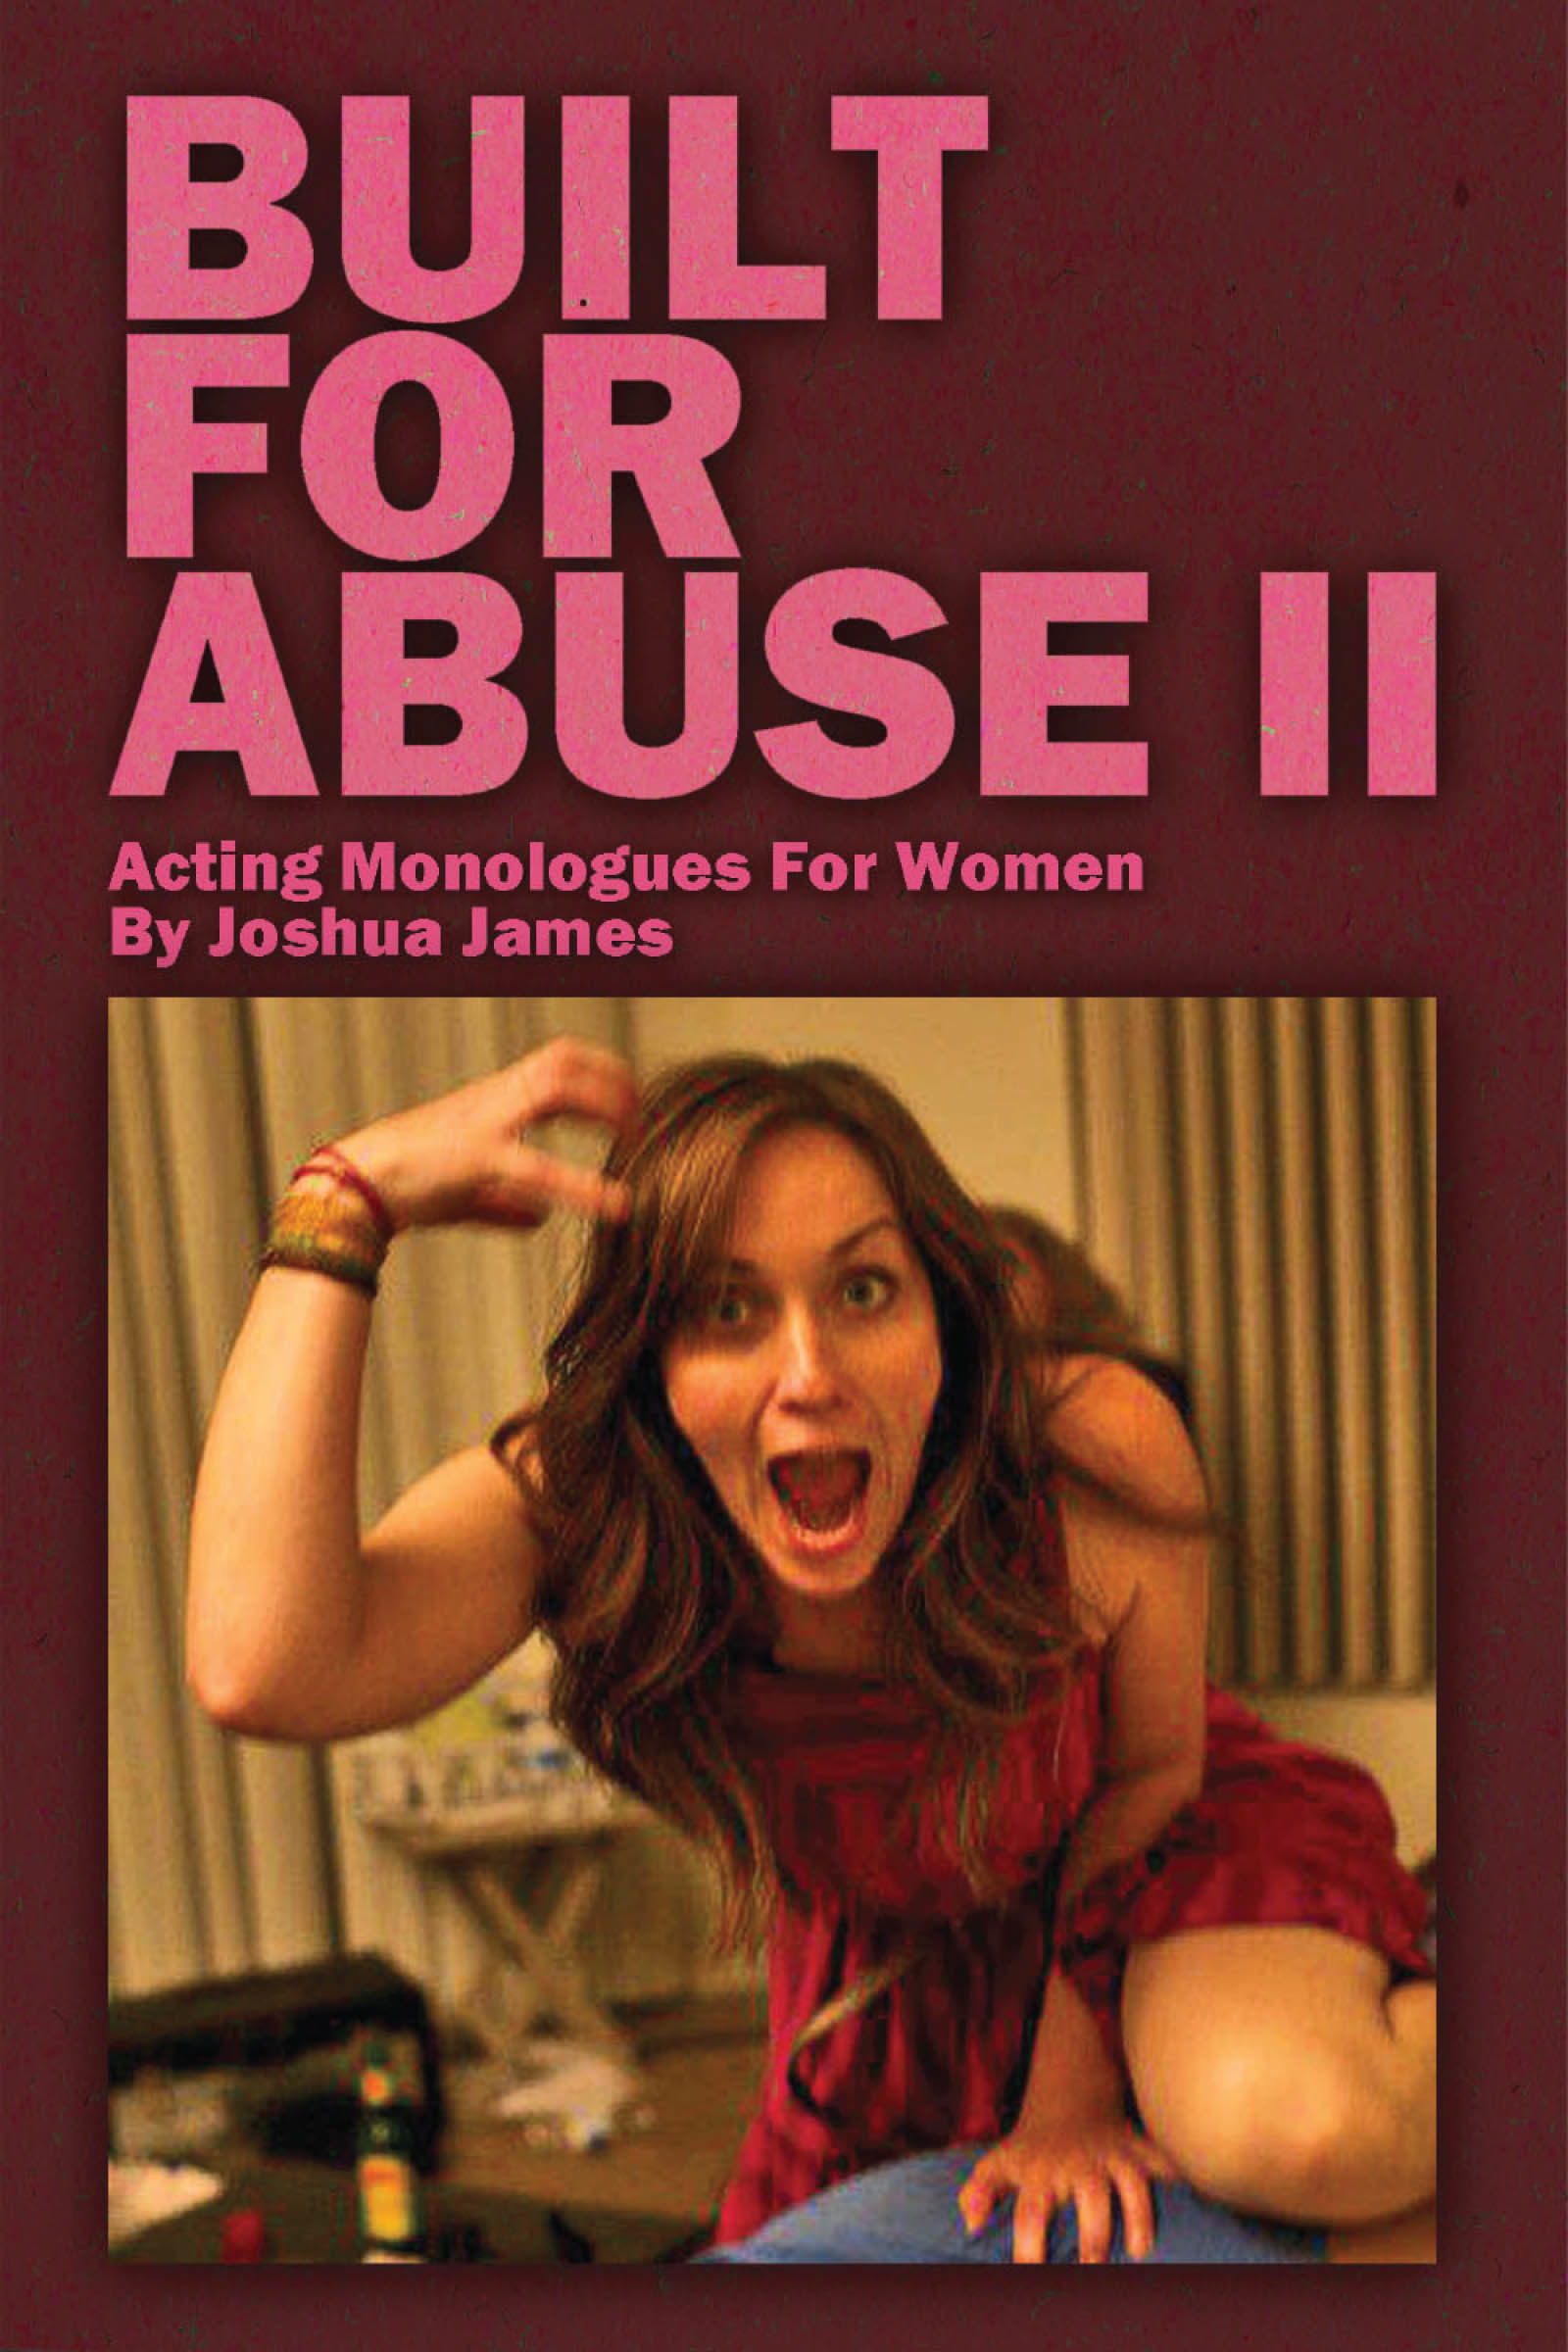 Built For Abuse II: Acting Monologues For Women